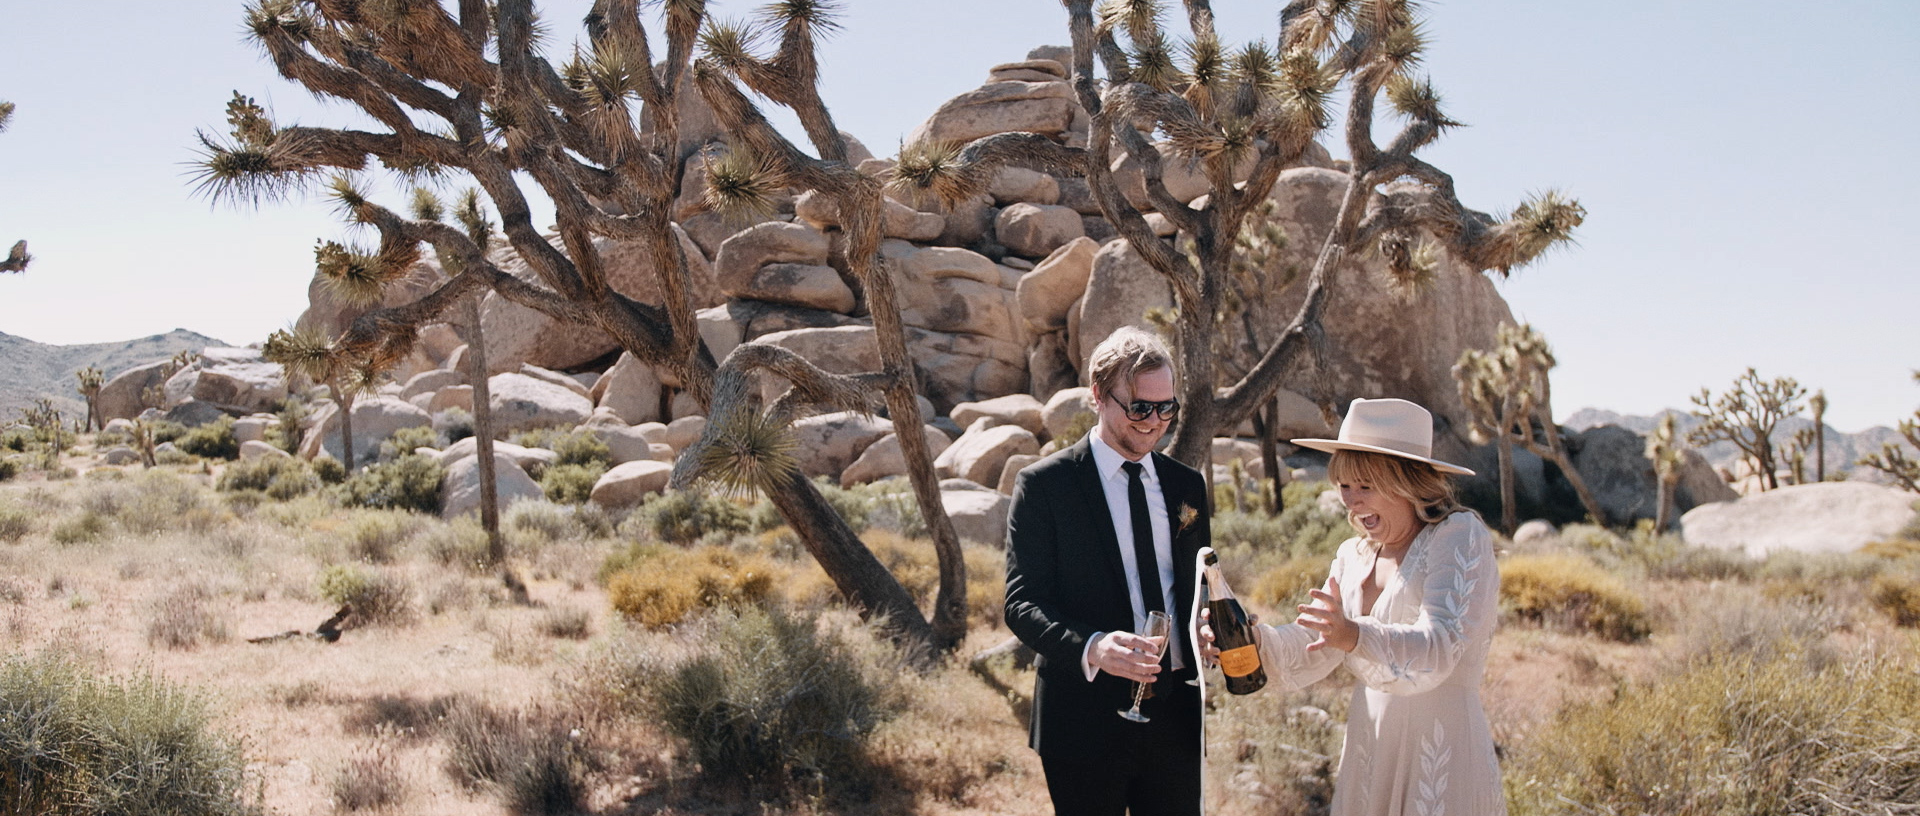 Hilton + Danny | Joshua Tree, California | Joshua Tree Saloon